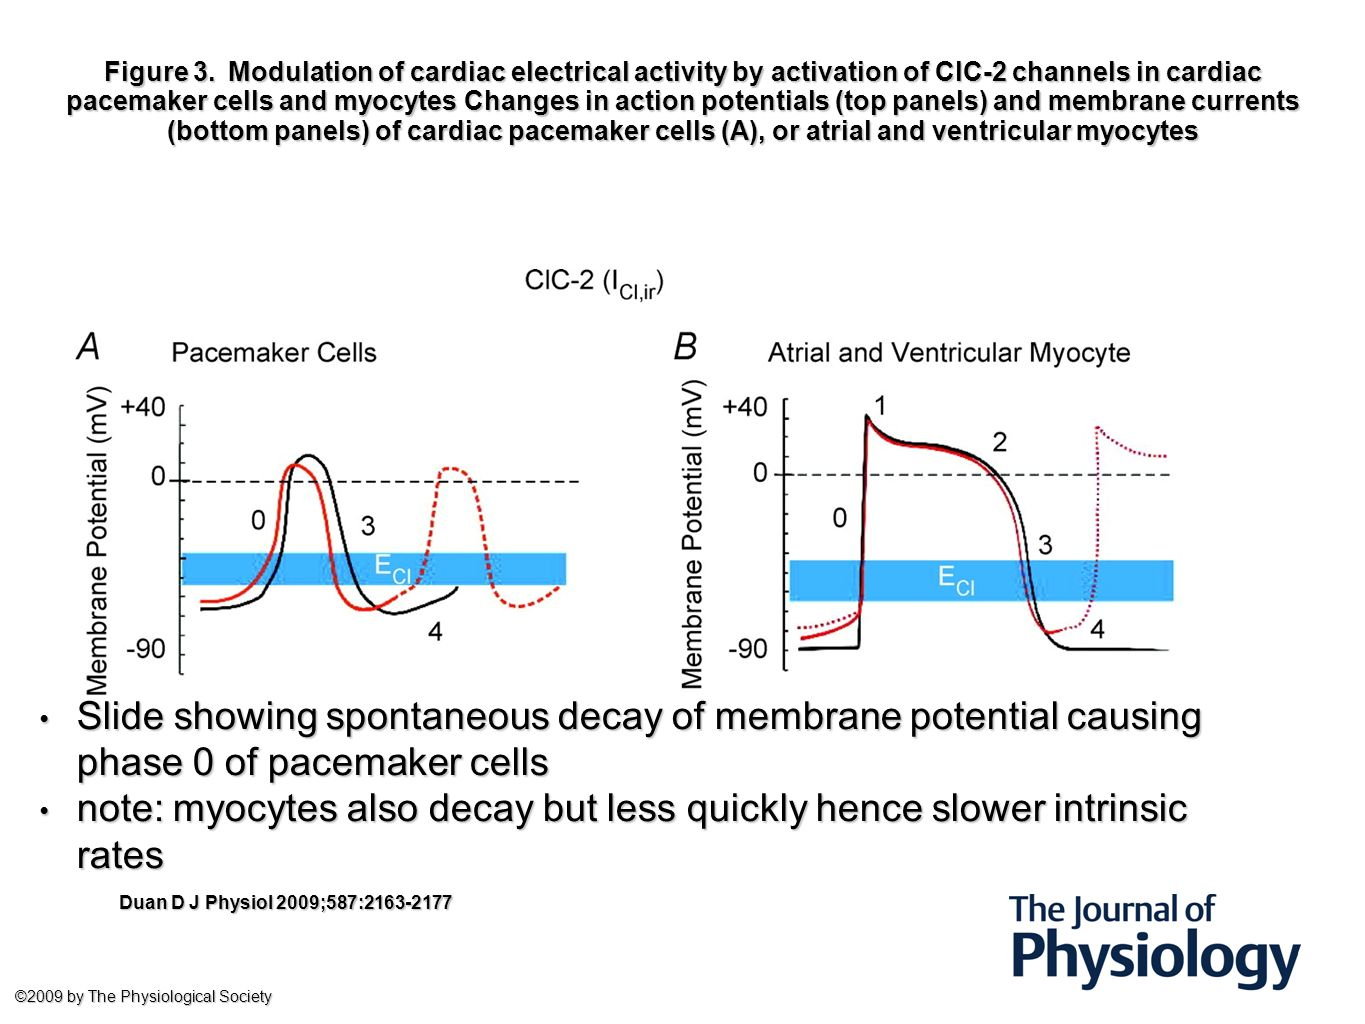 Transcutaneous pacing Mode Fixed or Demand Demand avoids R on T Energy as little as required +10mV Rate60-70bpm enough to maintain haemodynamics